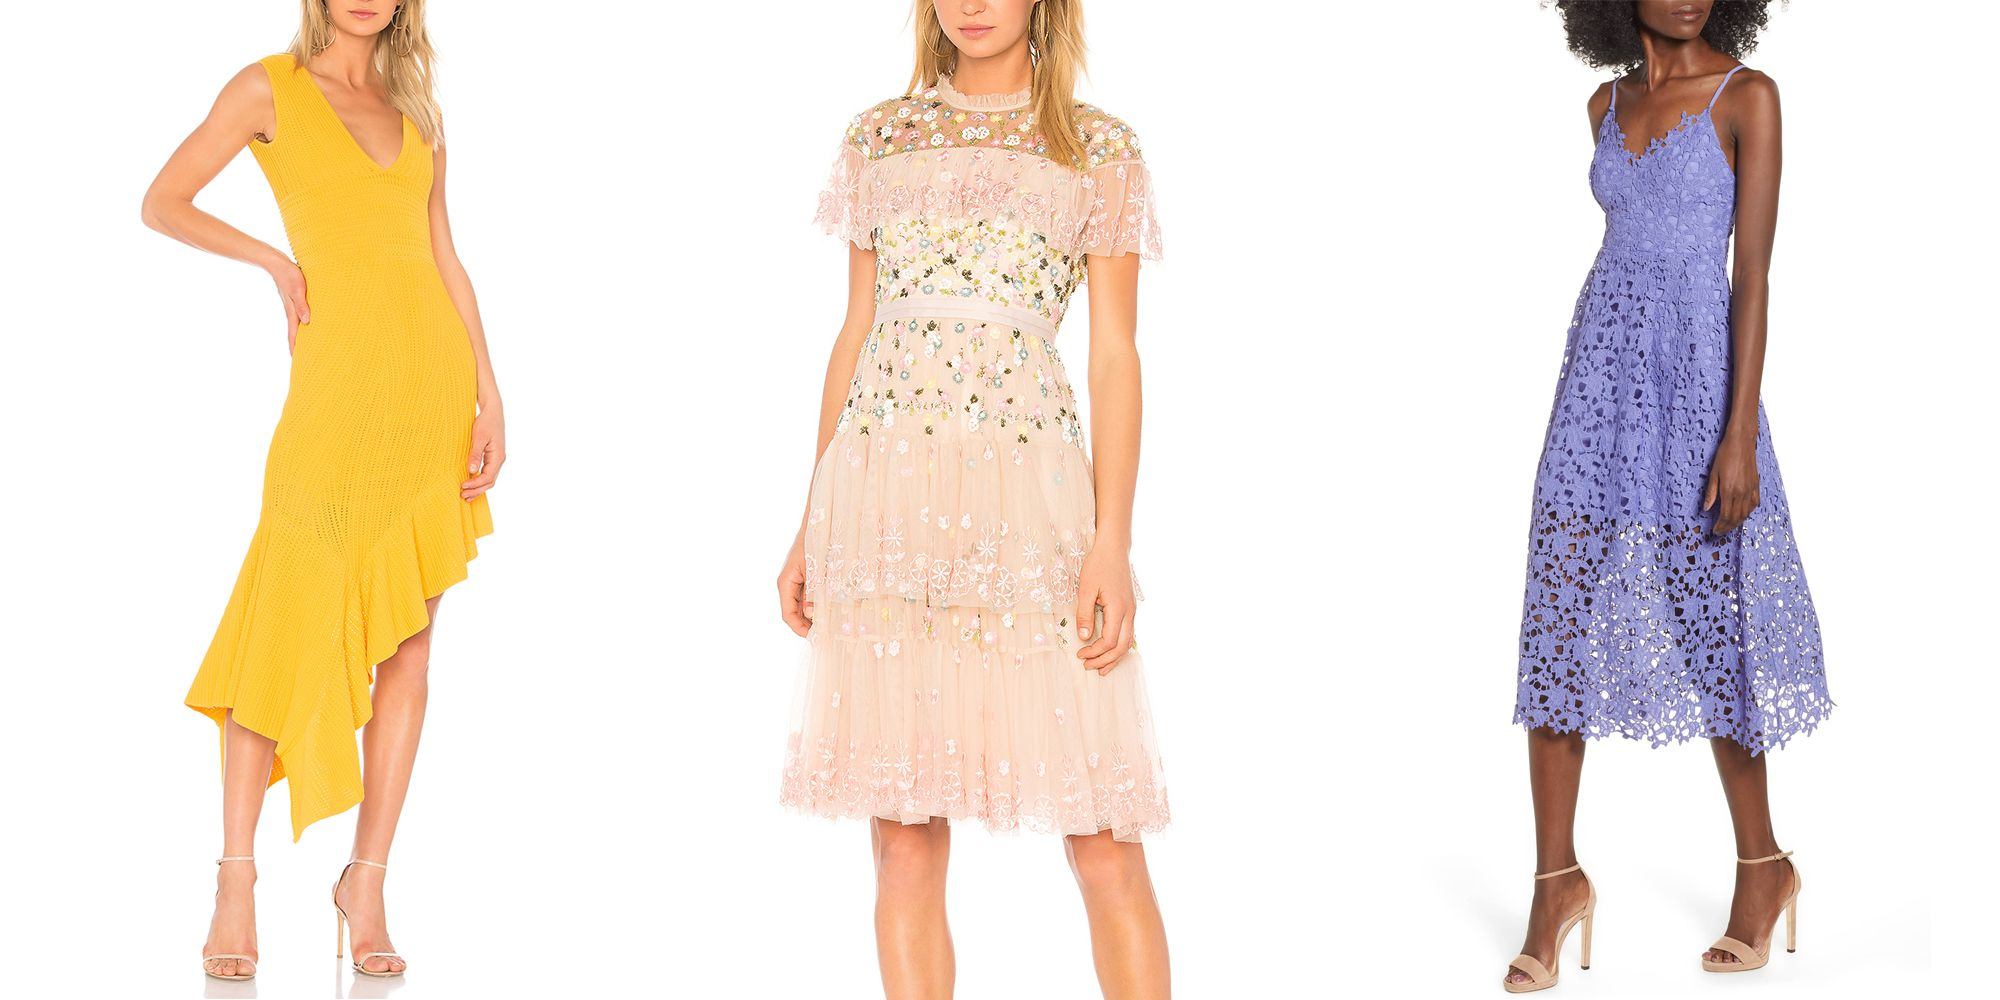 22 Chic Spring Wedding Guest Dresses , What to Wear to a